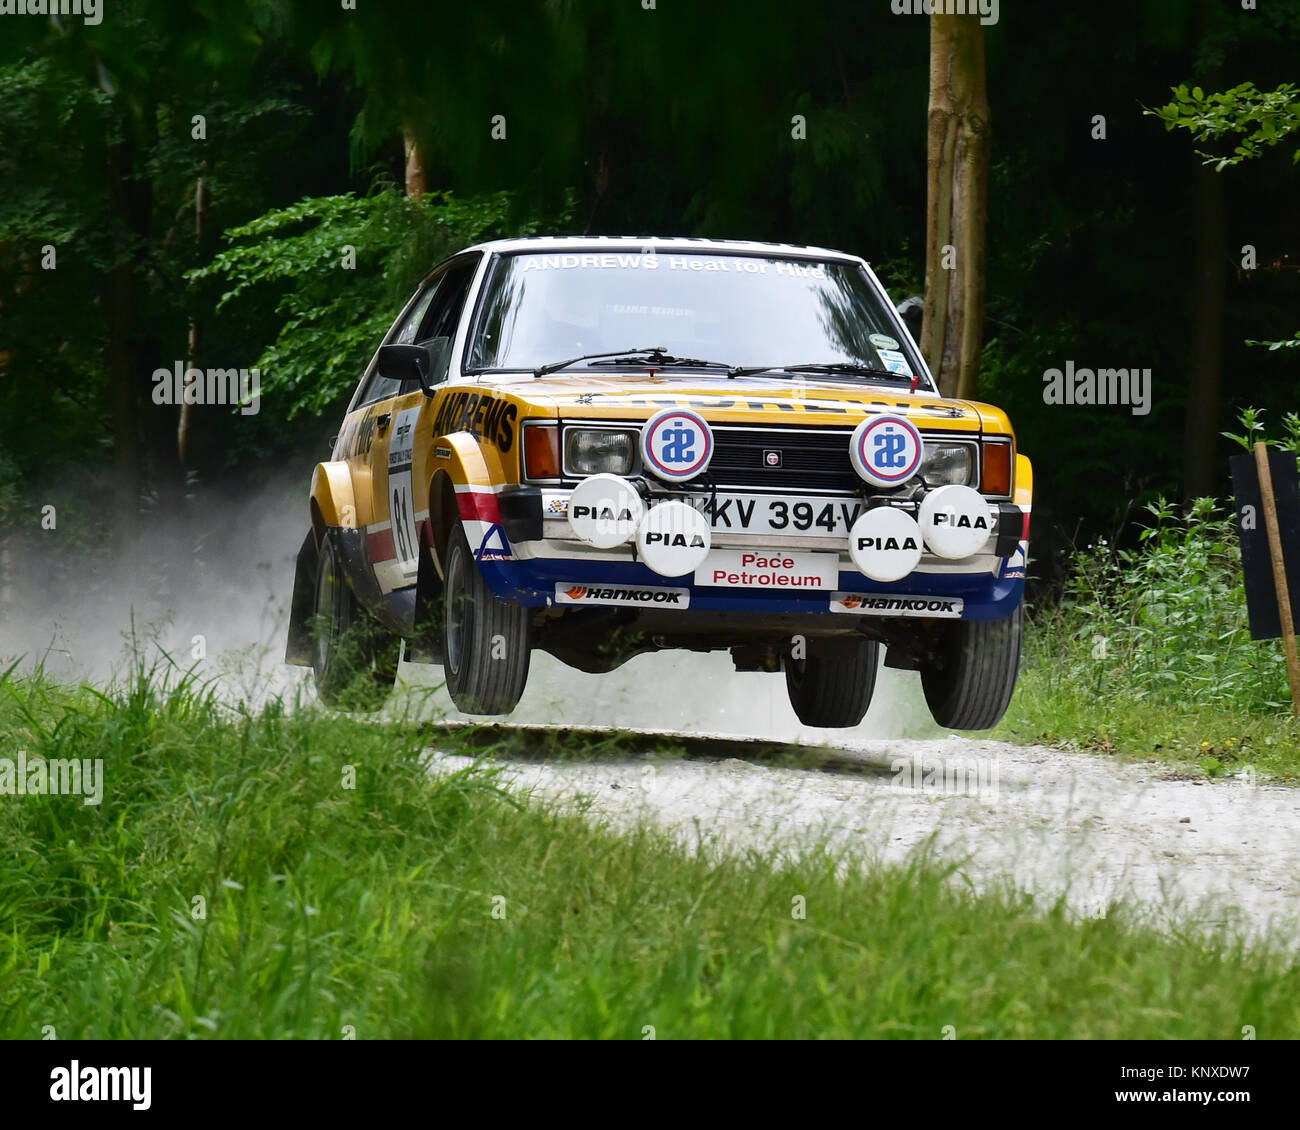 Robin Eyre-Maunsell, Talbot Sunbeam Lotus, KKV 394 V, Forest rally, Goodwood FoS 2015, 2015, Classic, poussières, Banque D'Images